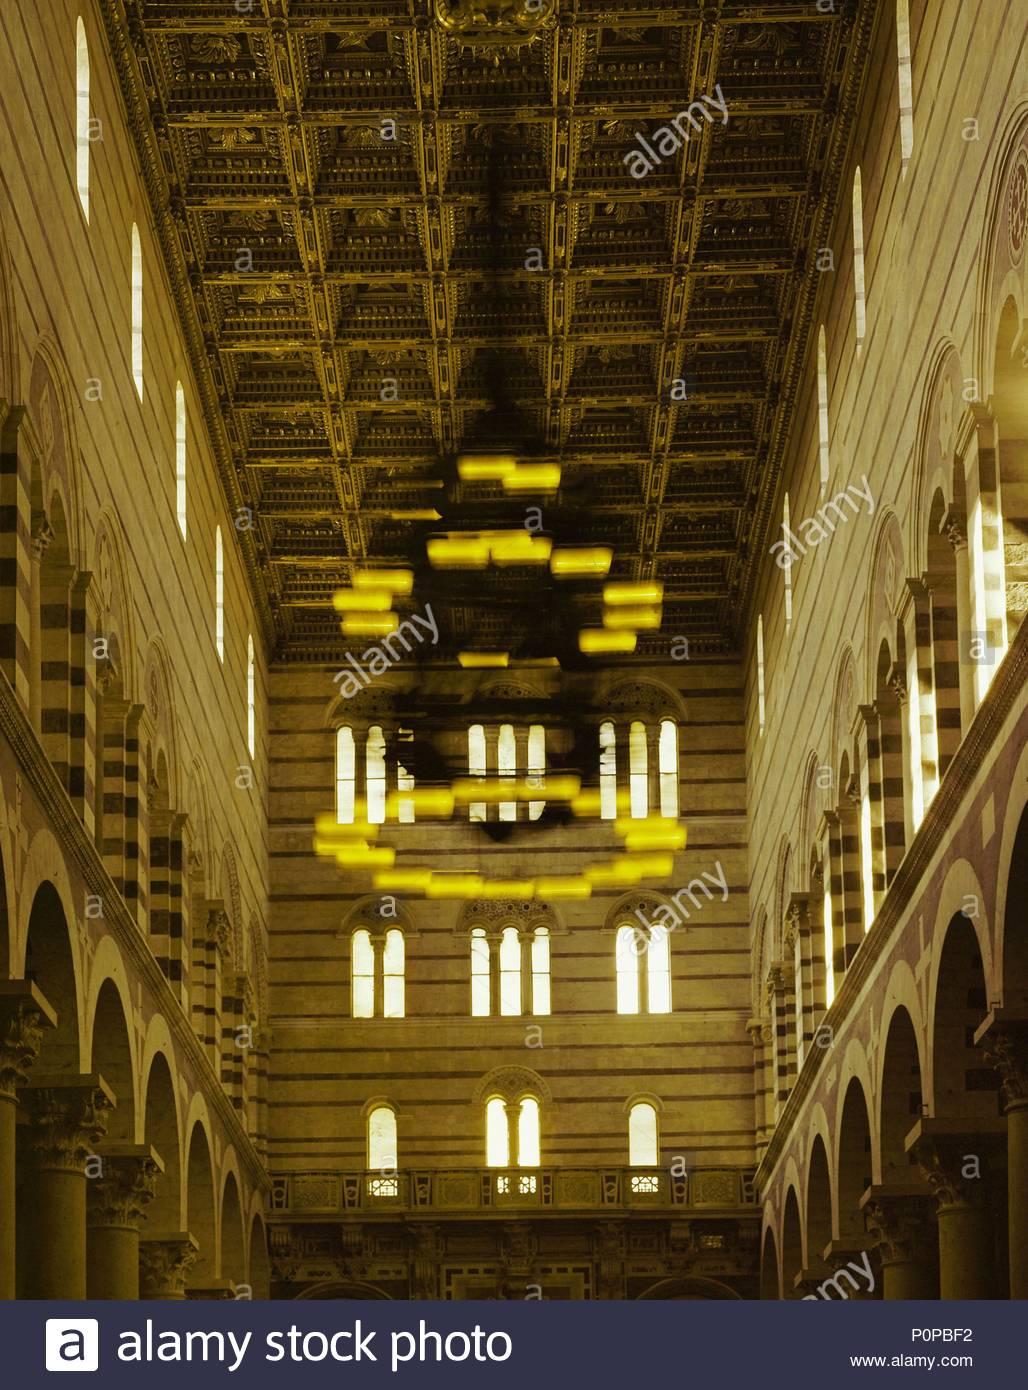 Swinging chandelier in the cathedral of pisa in 1583 galileo swinging chandelier in the cathedral of pisa in 1583 galileo conceived the idea of pendulous motion while looking at this chandelier mozeypictures Image collections